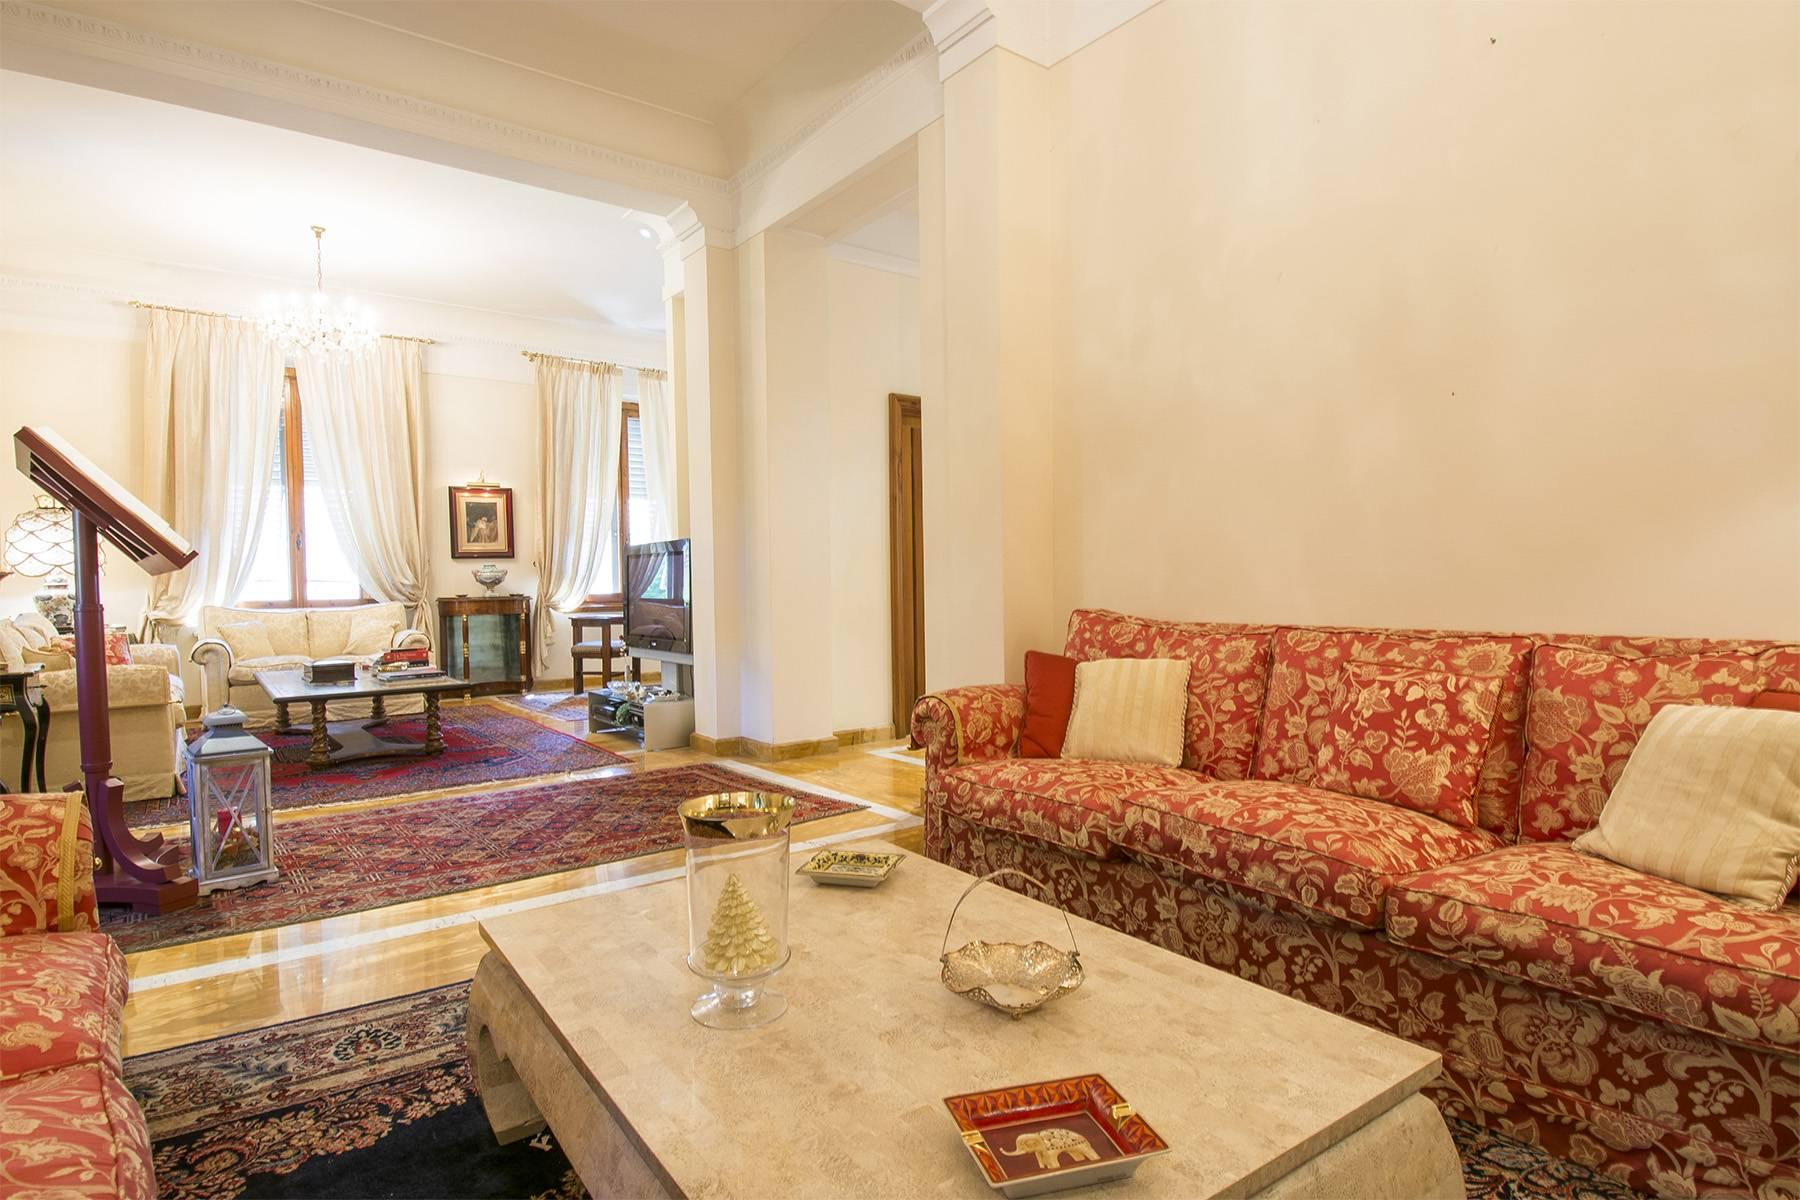 Luxury Art Nouveau Villa in the heart of Montecatini Terme - 5